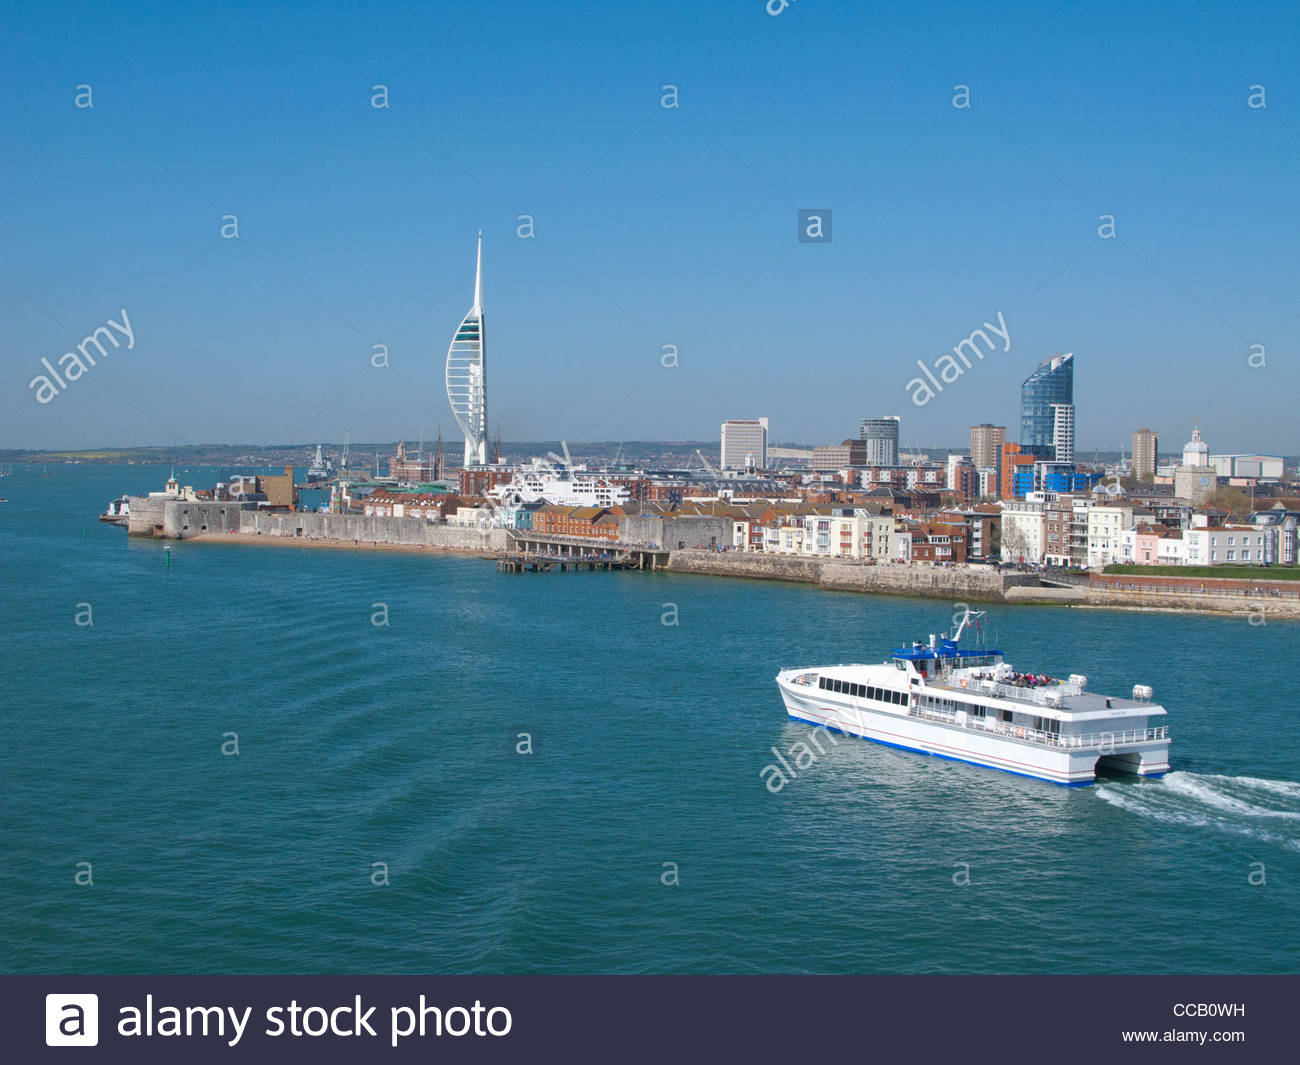 Ferry boating past cityscape of Portsmouth with modern spire in background - Stock Image